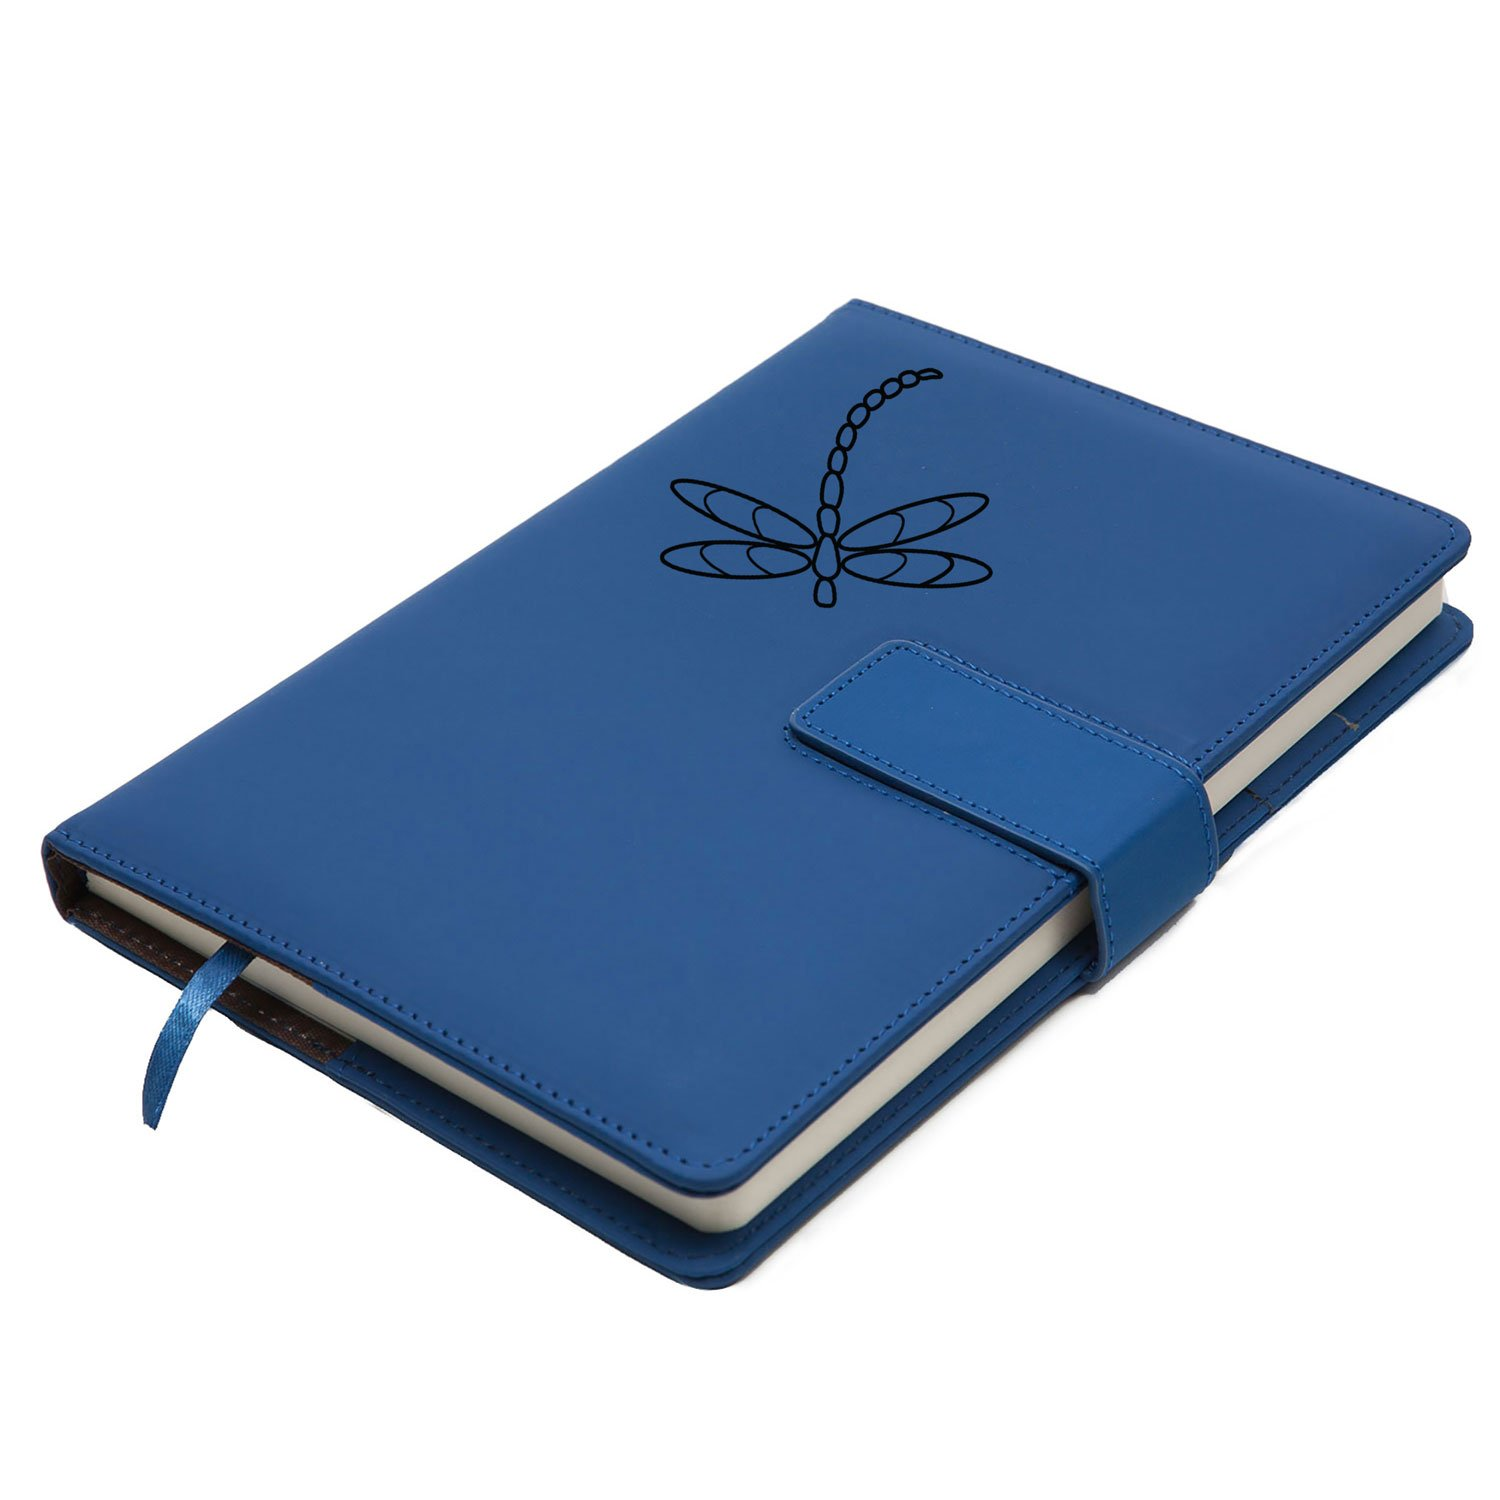 The Dragonfly Refillable Writing Journal | Faux Leather Cover, Magnetic Clasp + Pen Loop | Blank Notebook | 200 Lined Pages, 5 x 8 Inches for Travel, Personal, Poetry | Blue | The Amazing Office by The Amazing Office (Image #5)